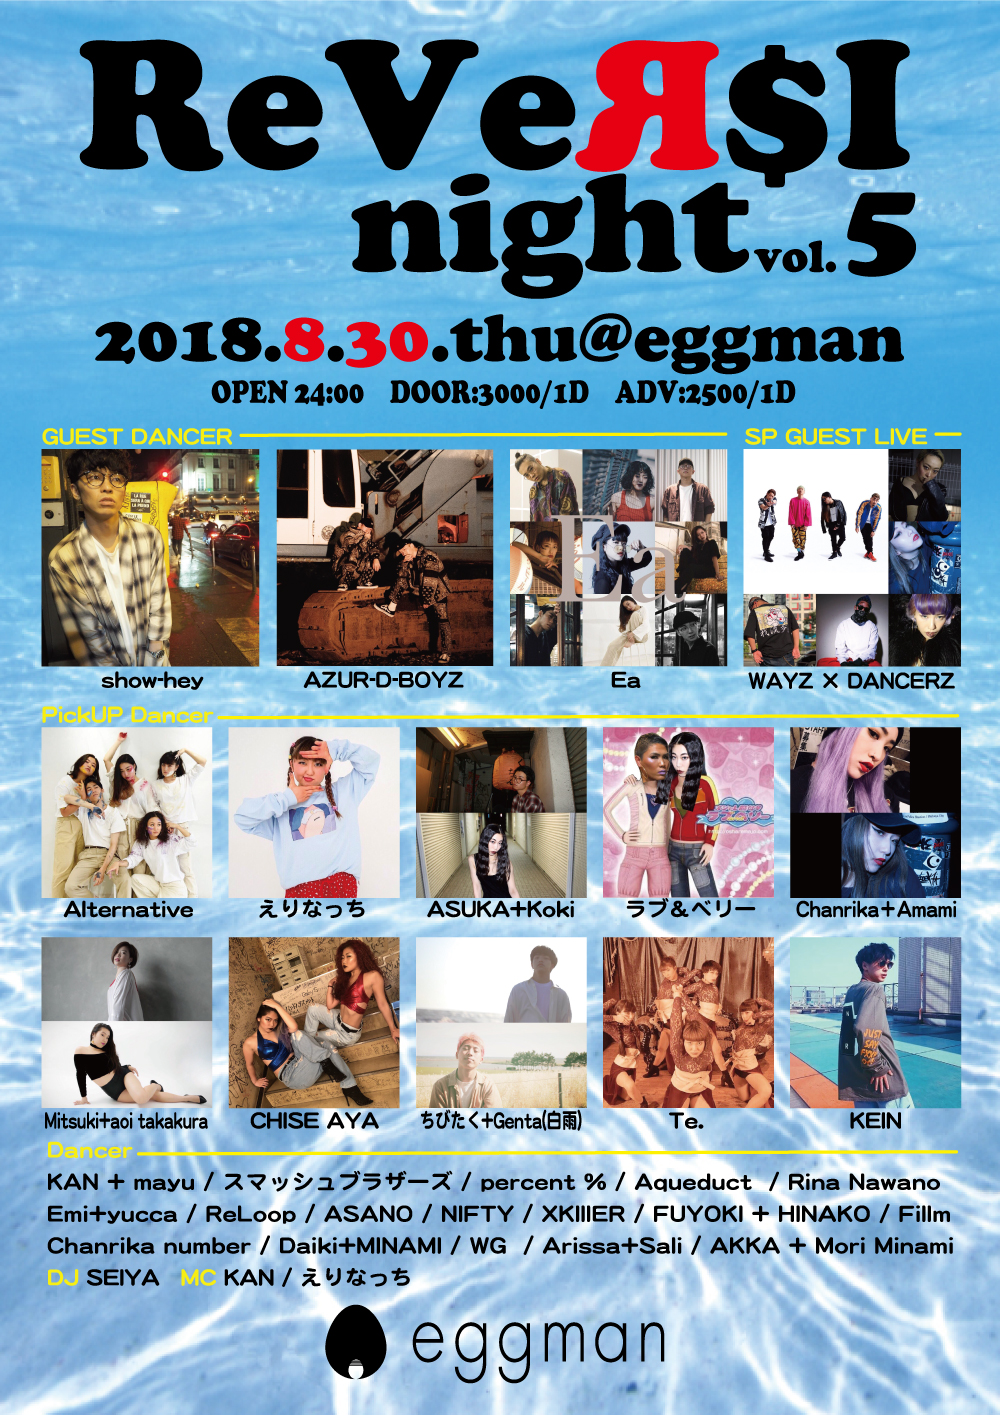 ReVeR$I night vol.5